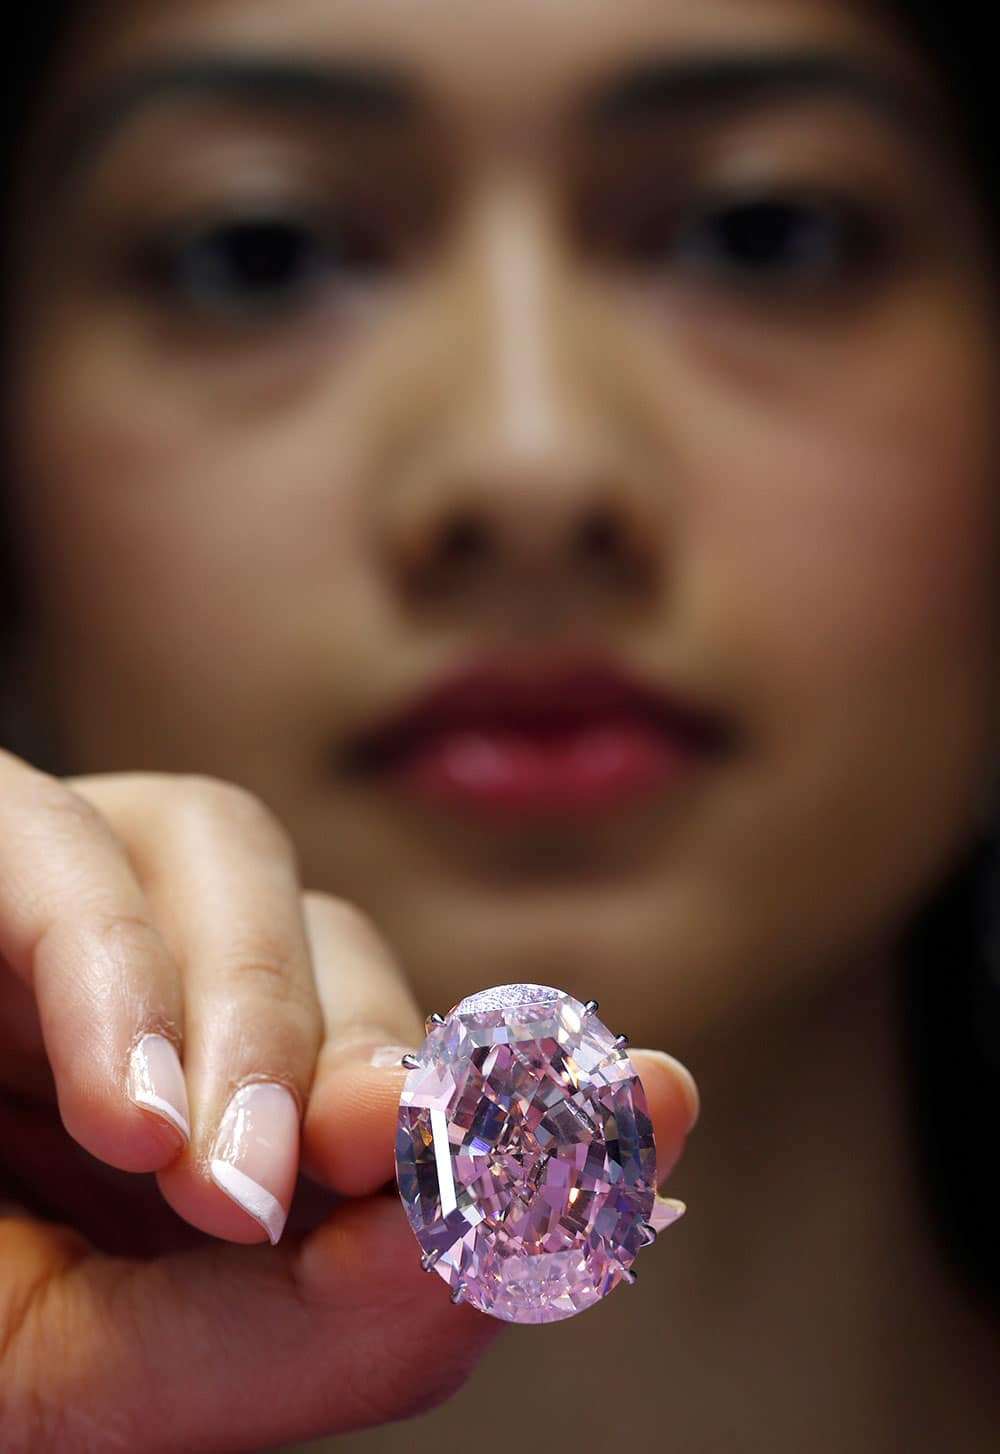 The Pink Star diamond weighing 59.6 carat is displayed during a press preview at Sotheby`s, in Hong Kong. he Pink Star, one of the world`s natural treasures, is the most valuable diamond ever to be offered at auction, estimated in excess of US$ 60 million.